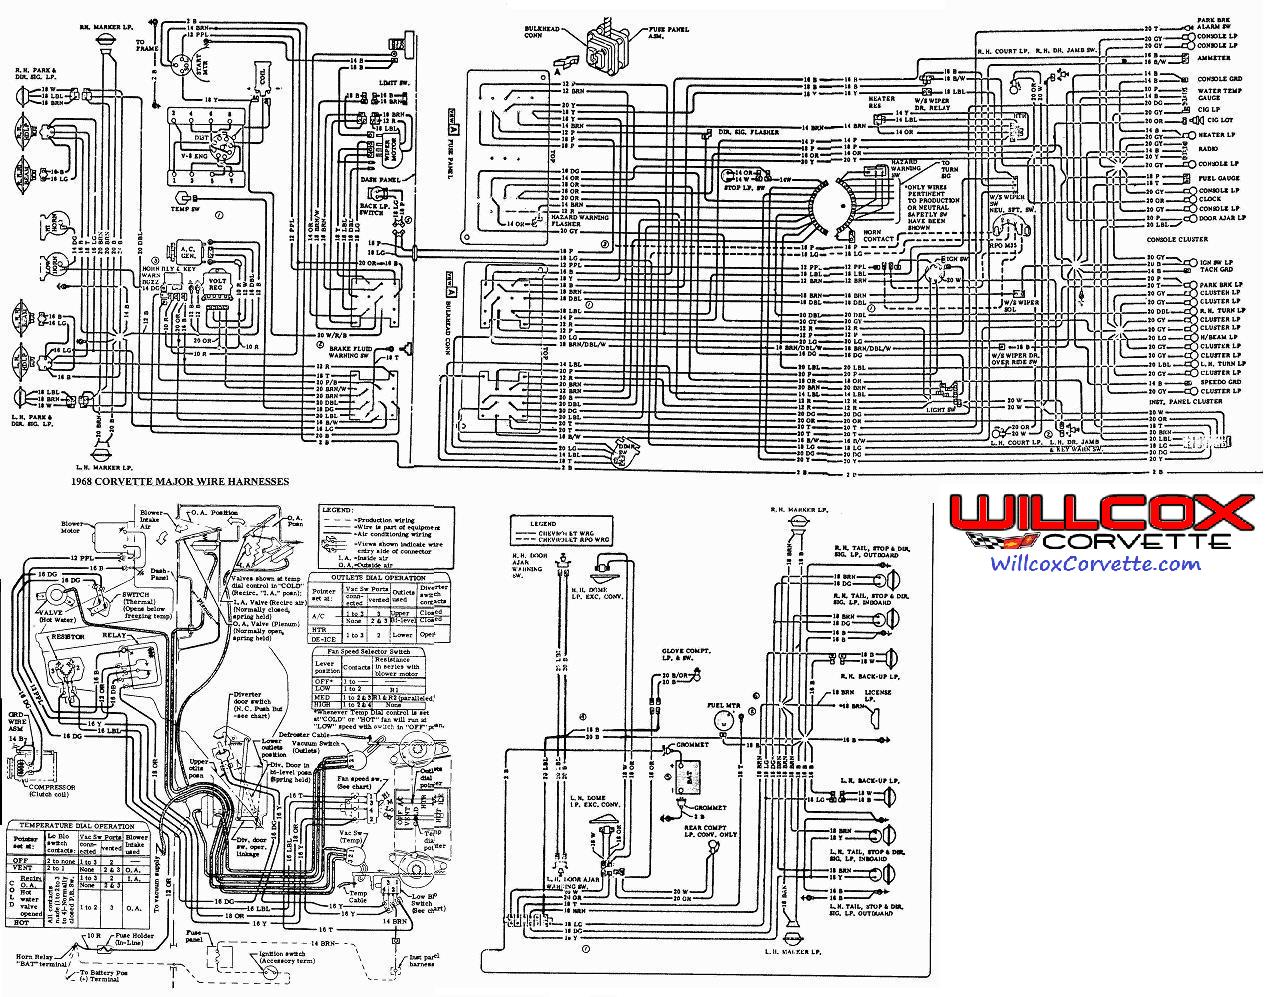 1968 corvette wire schematic 68 corvette from the aim 1968 corvette wire schematic 68 corvette from the aim willcox 1968 corvette wiring diagram at cos-gaming.co